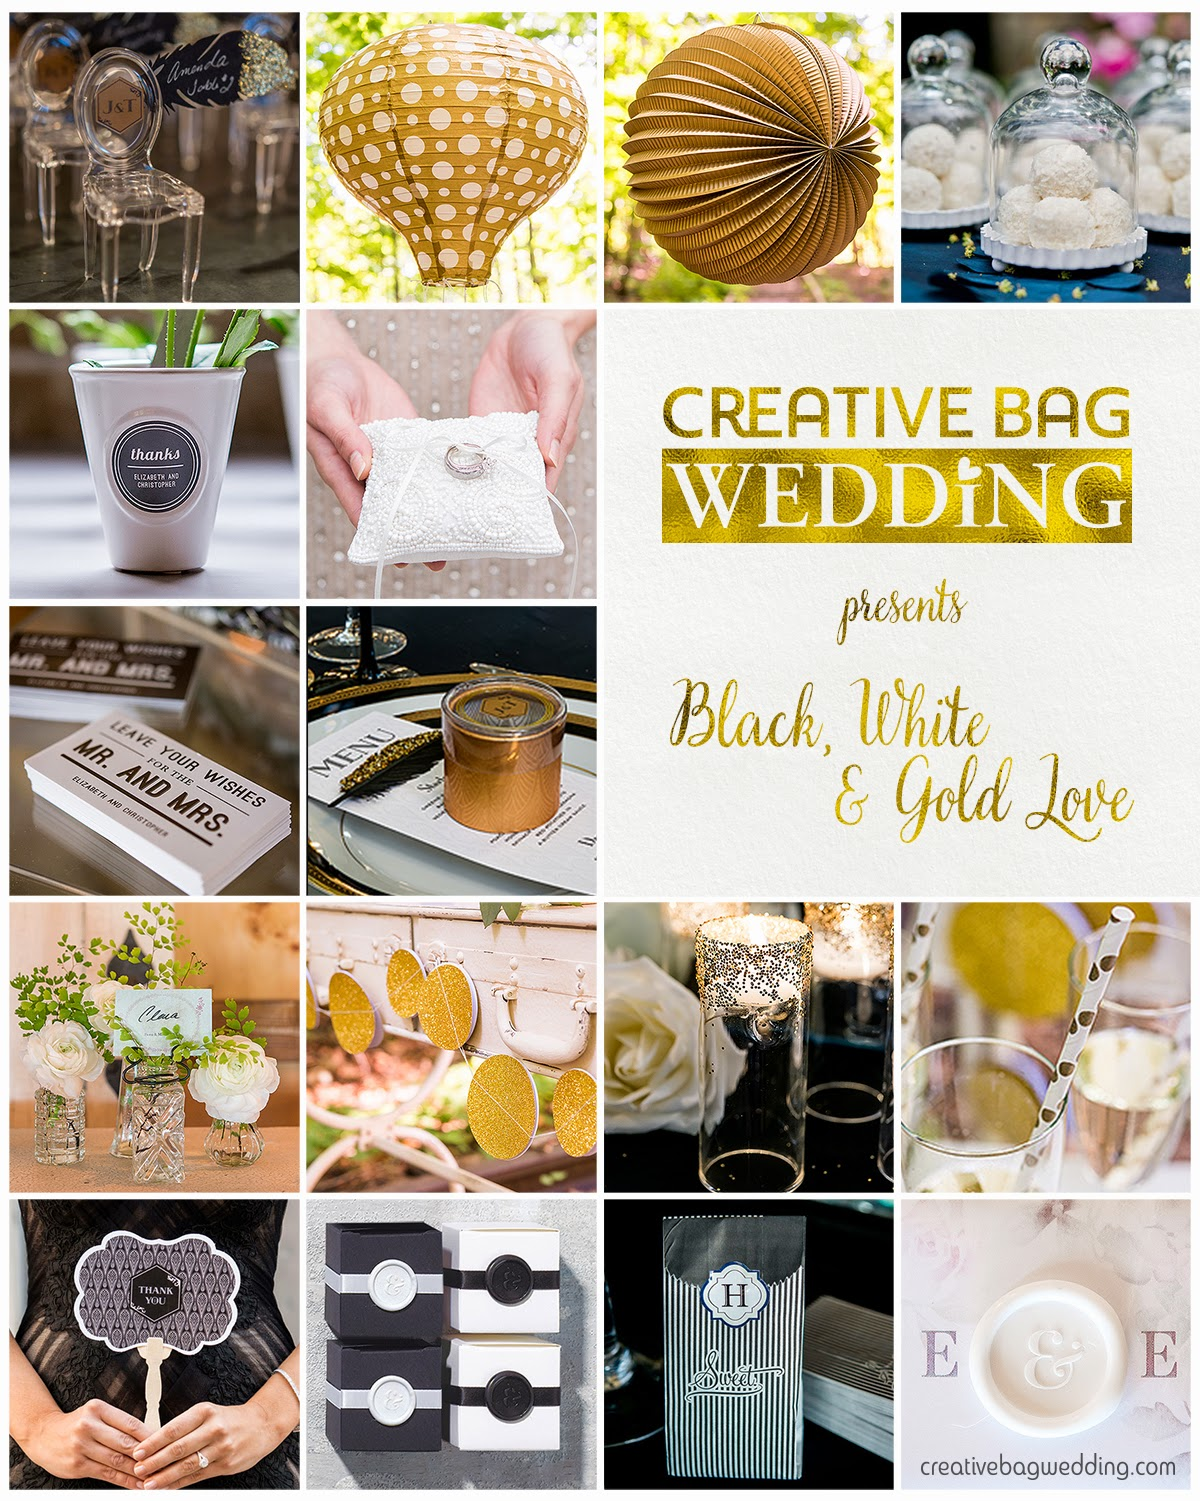 black, white & gold theme mood board | Creative Bag Wedding